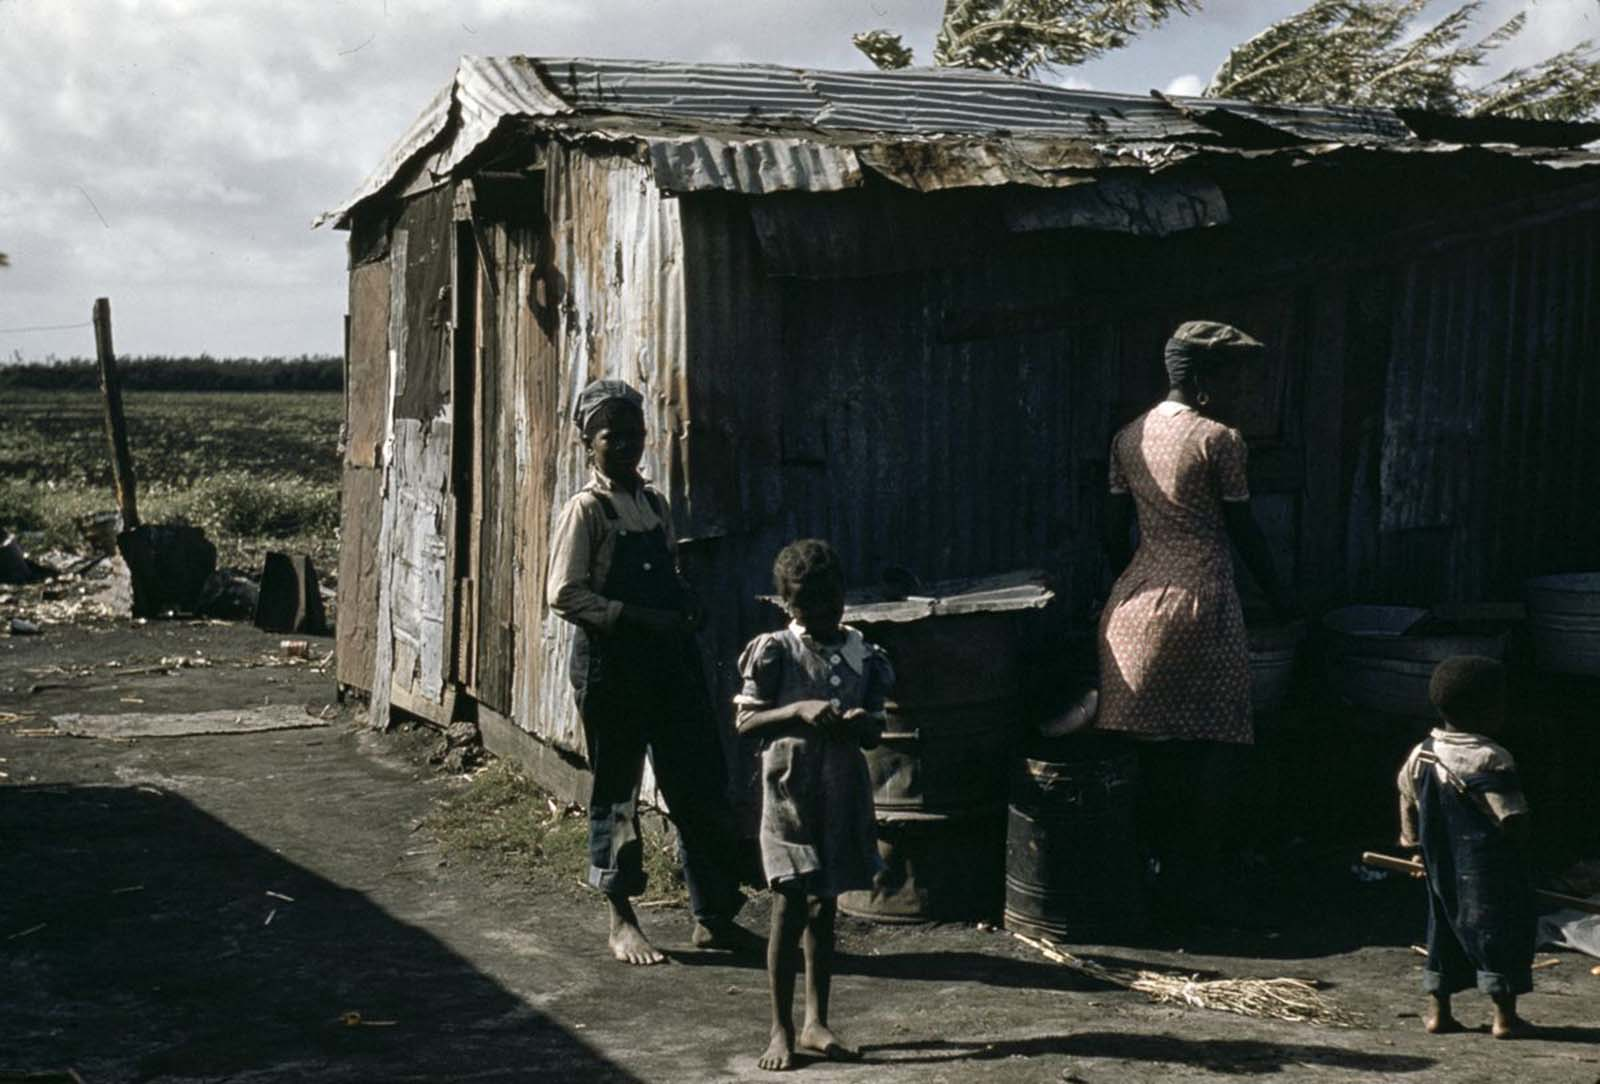 A migrant family in Belle Glade, Florida. 1941.